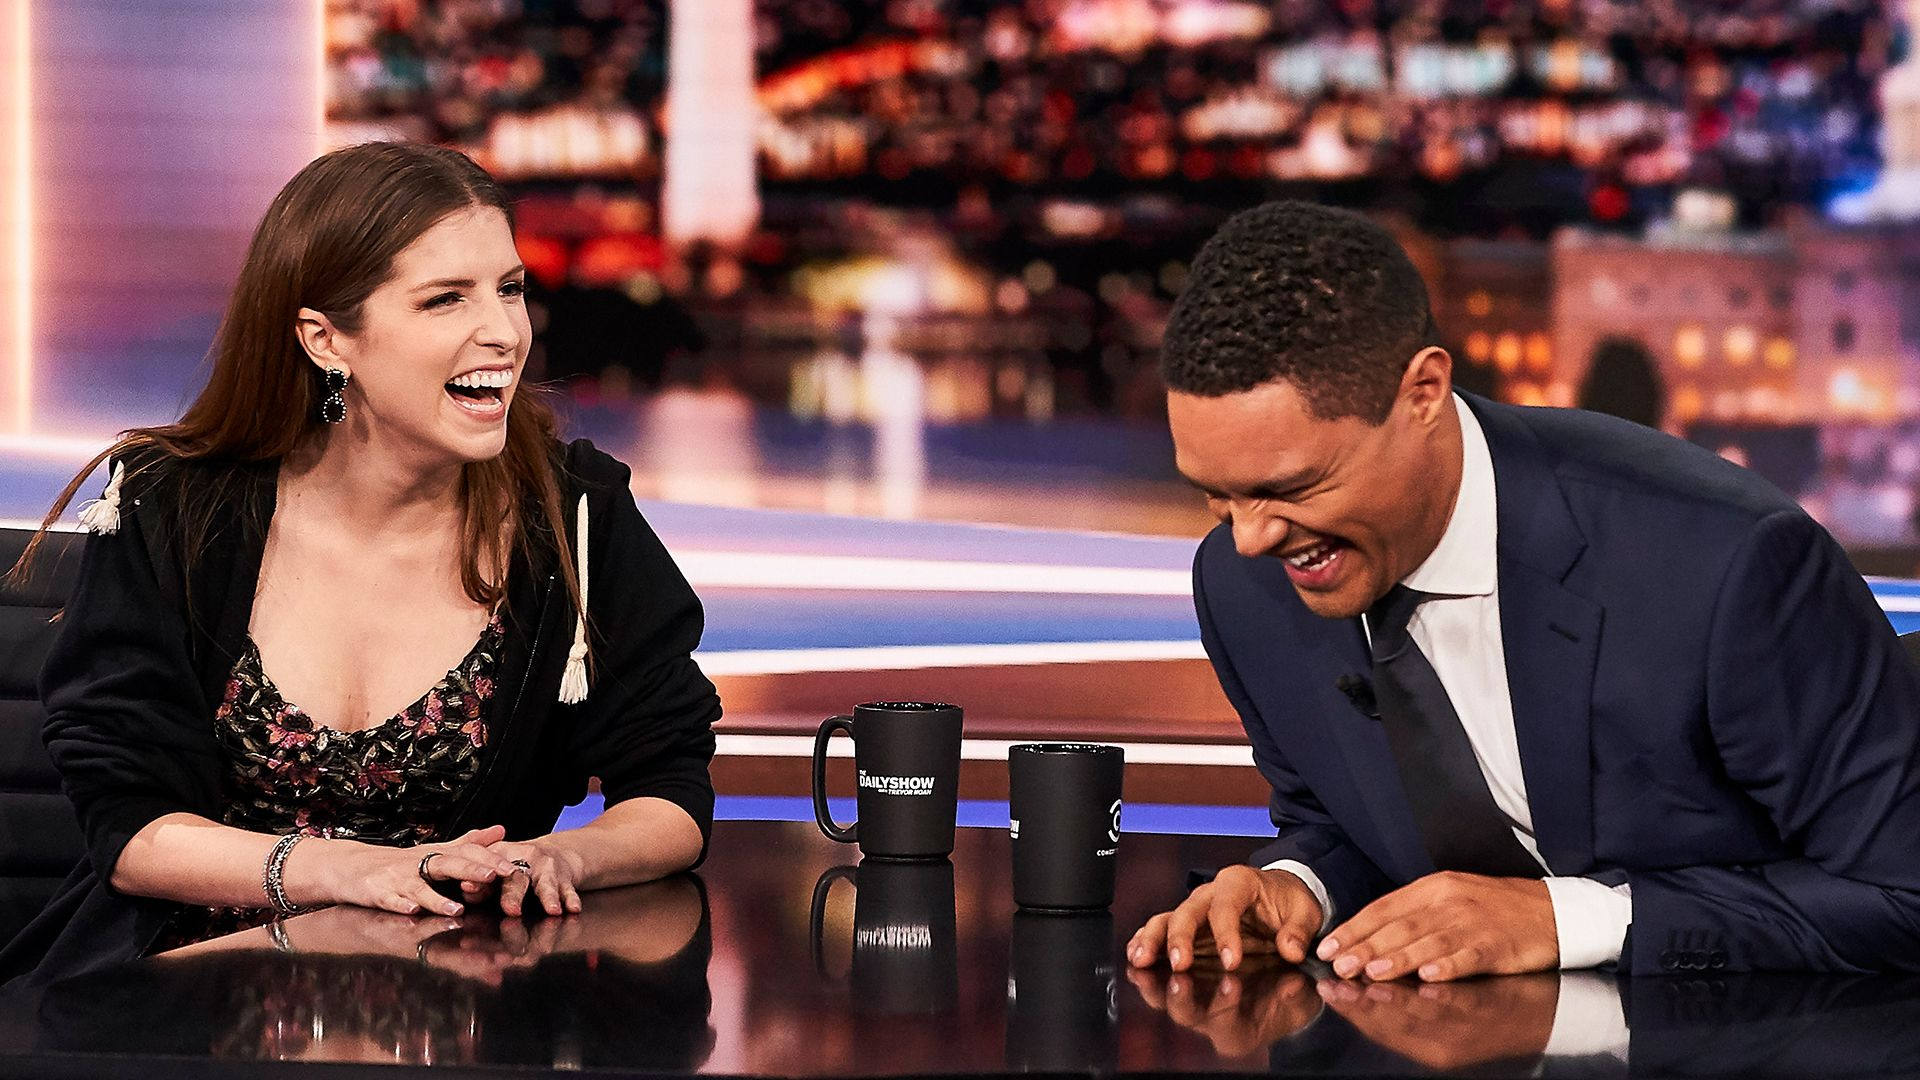 All About Anna Uncensored between the scenes - anna kendrick is an audience member's